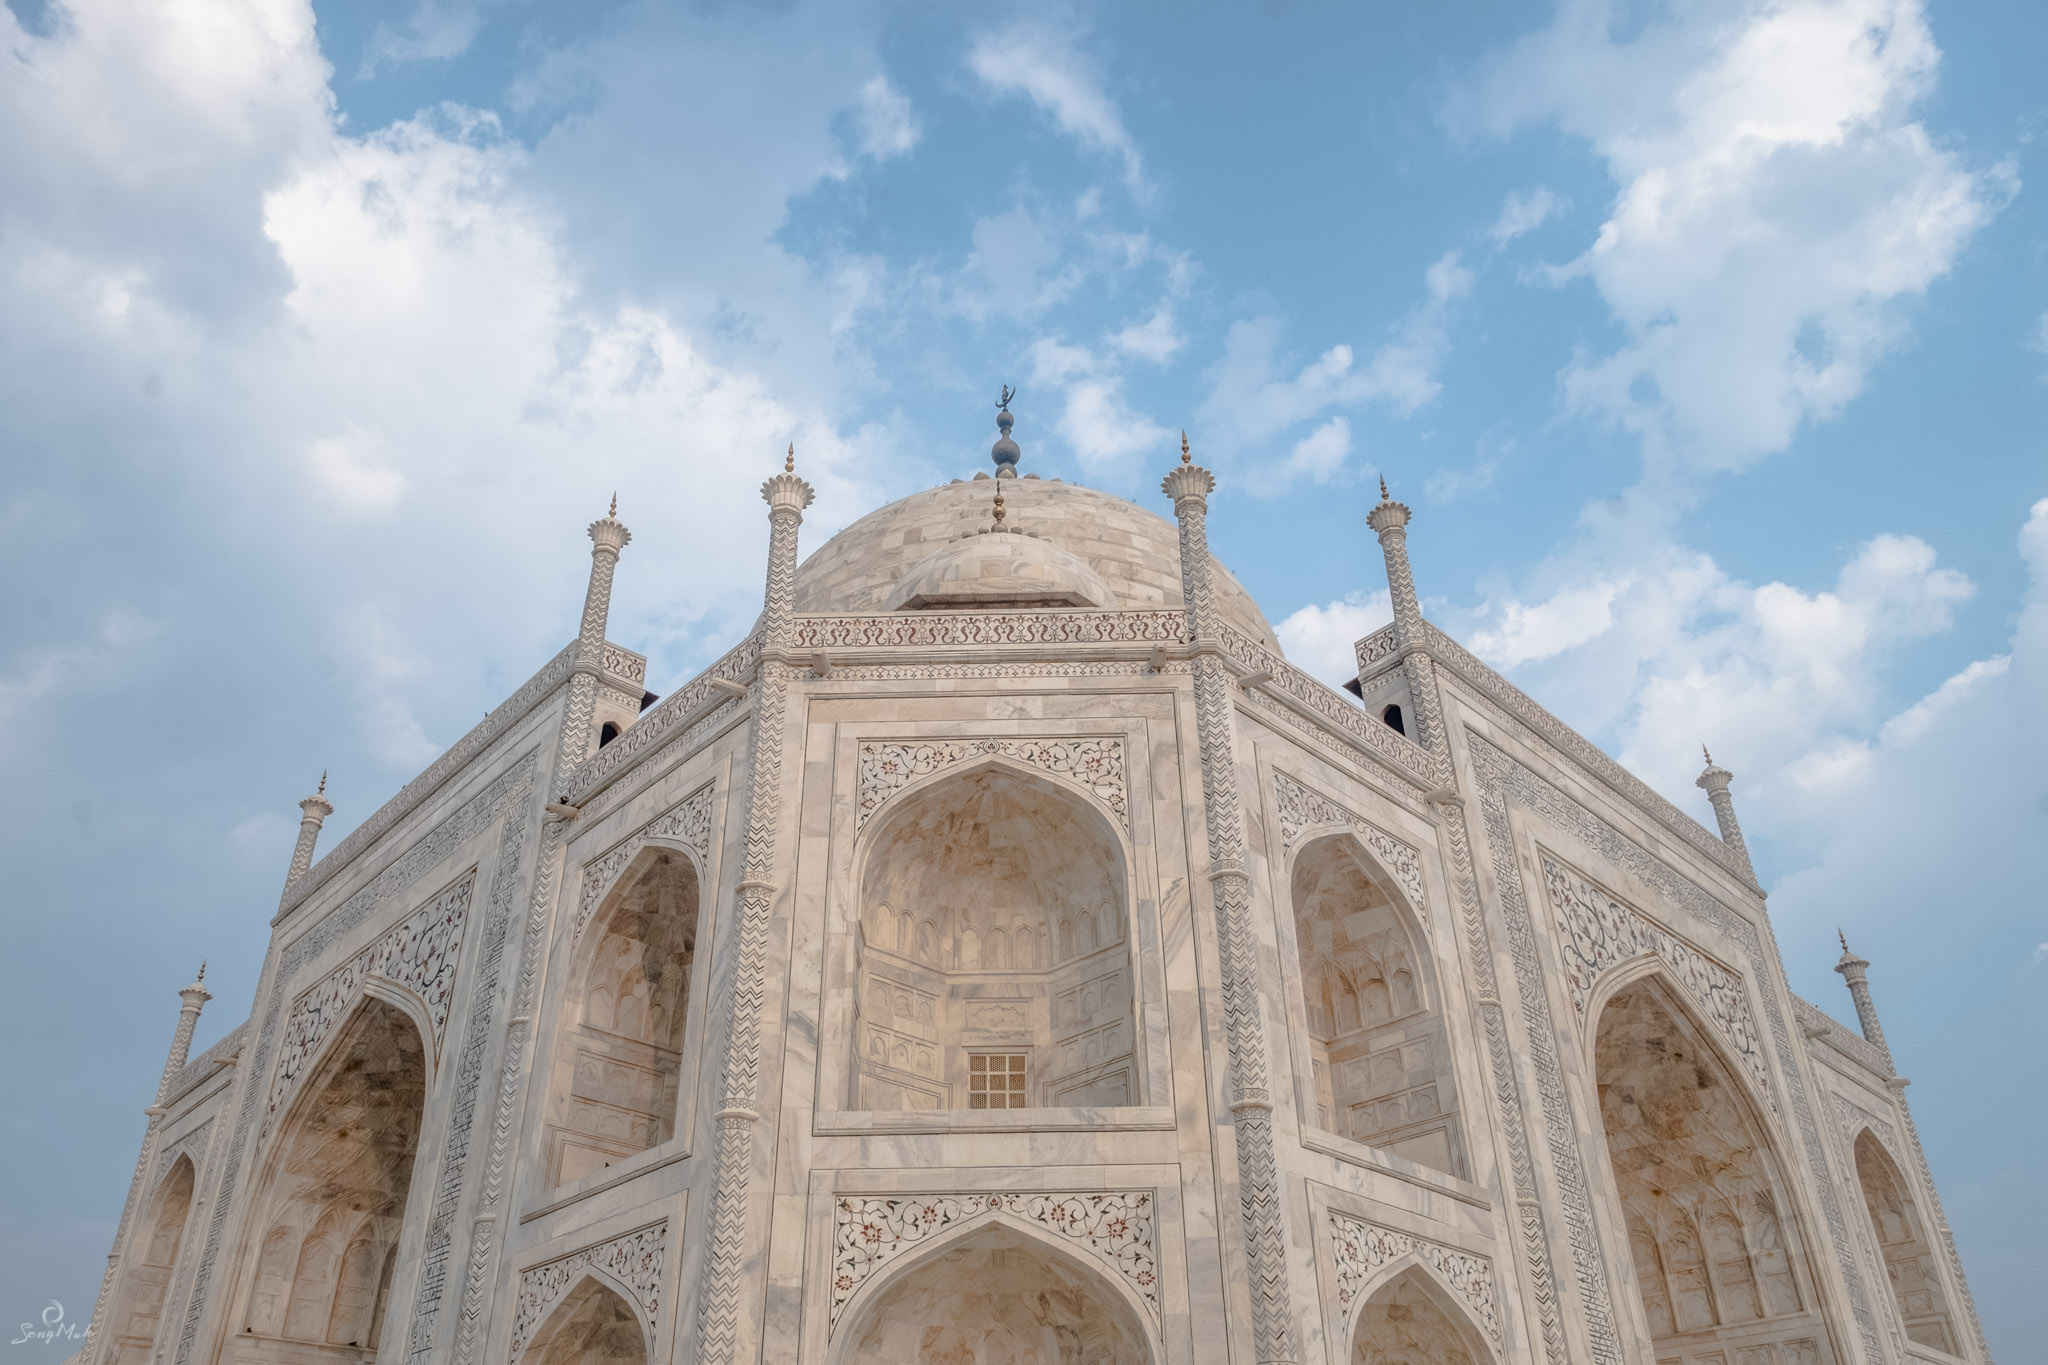 Detail of the Taj Mahal